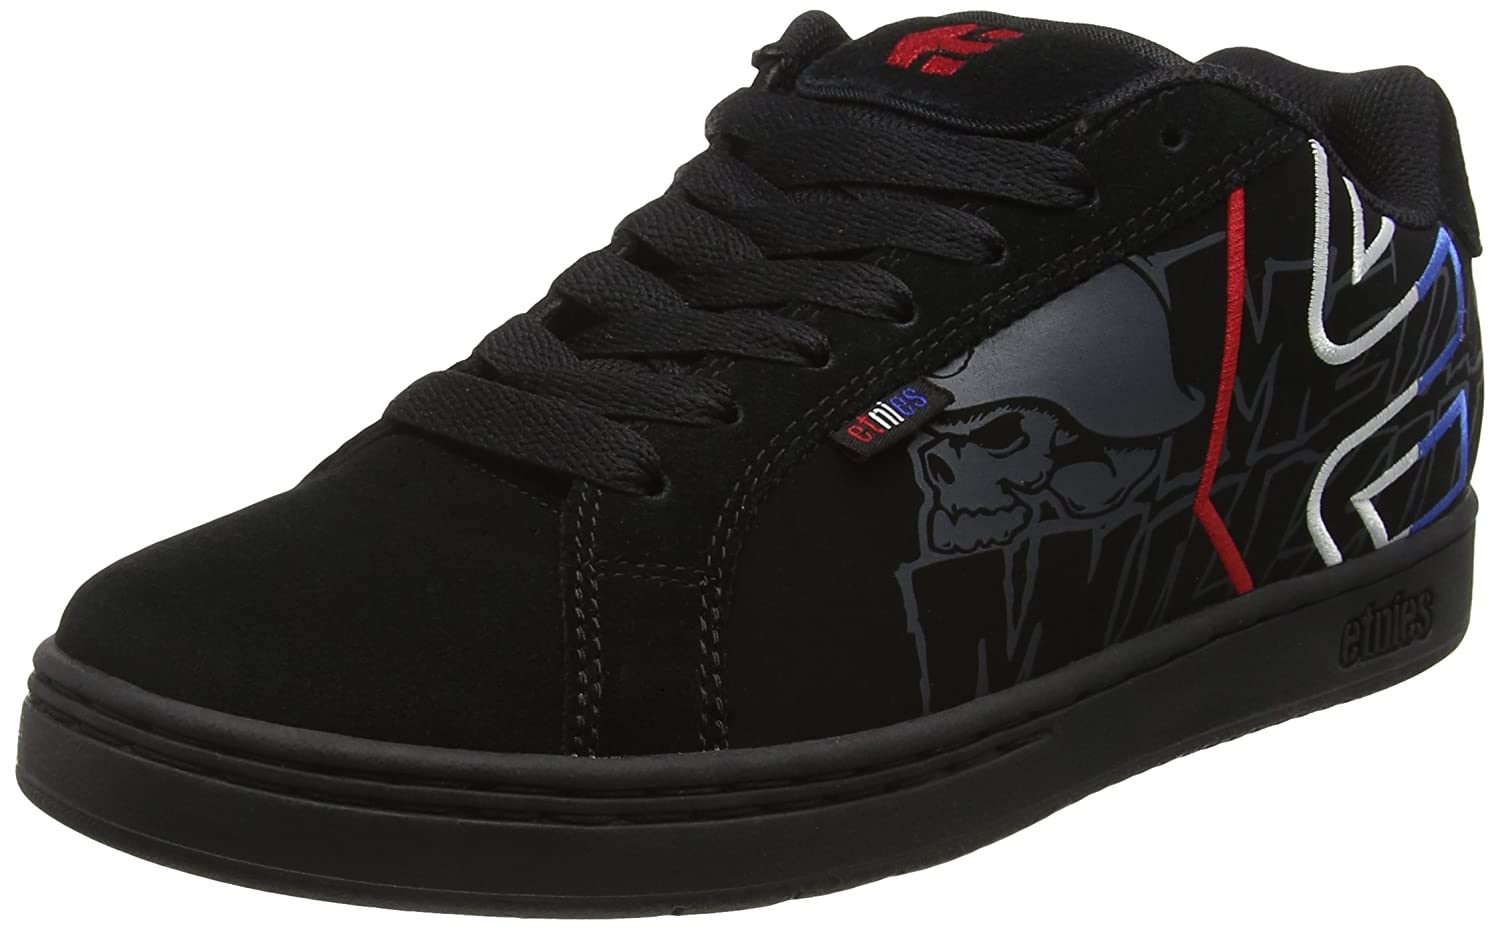 etnies Metal Mulisha Fader - Zapatillas de Skate Para Hombre, Color Negro - Black (black/blue/white589), Talla 43 EU (9 UK)